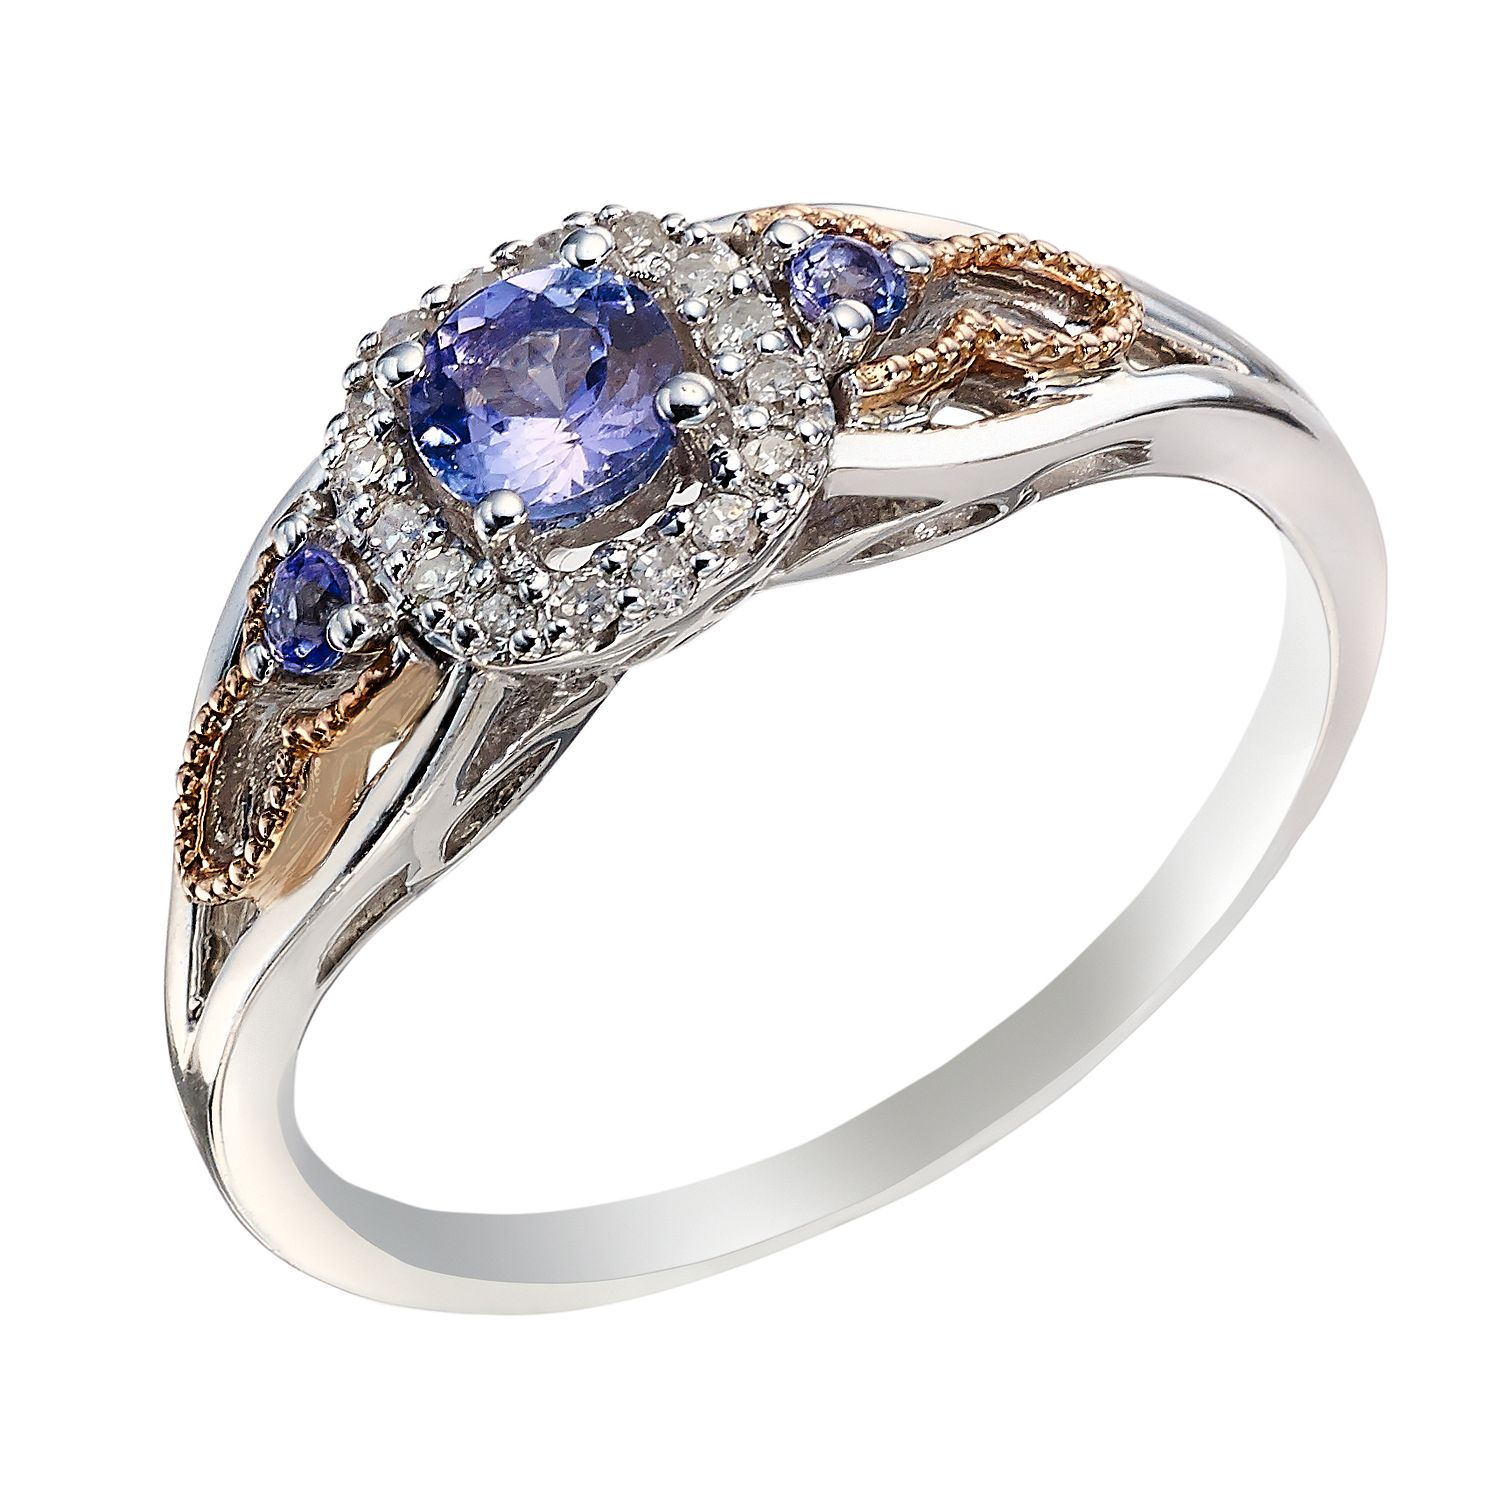 paragon rings and bands ring image gold tanzanite boutique engagement diamond gemstone white